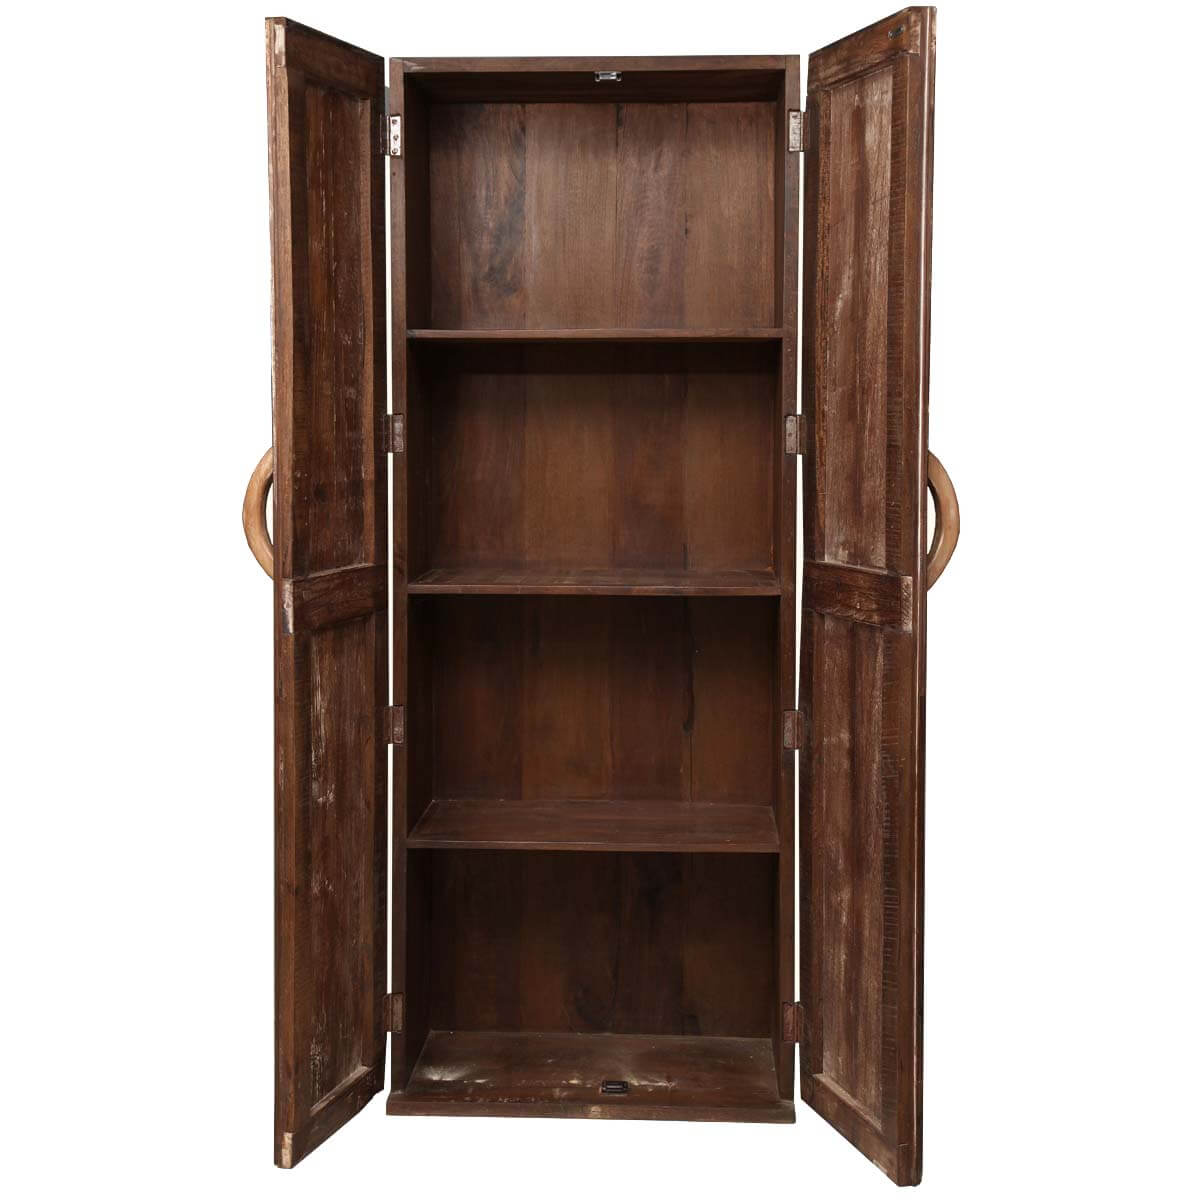 Appalachian rustic reclaimed wood wardrobe cabinet armoire